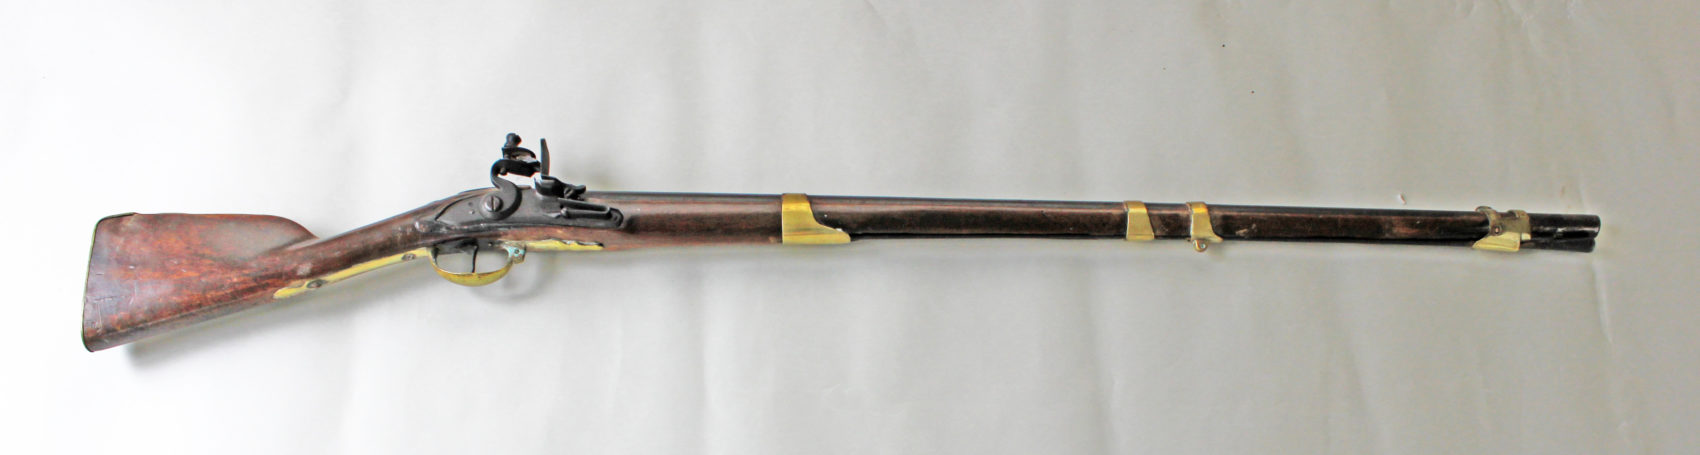 American colonist Private John Simpson is believed to have used this musket to fire the first shot in the Battle of Bunker Hill in 1775. (Courtesy Jonathan Holstein)